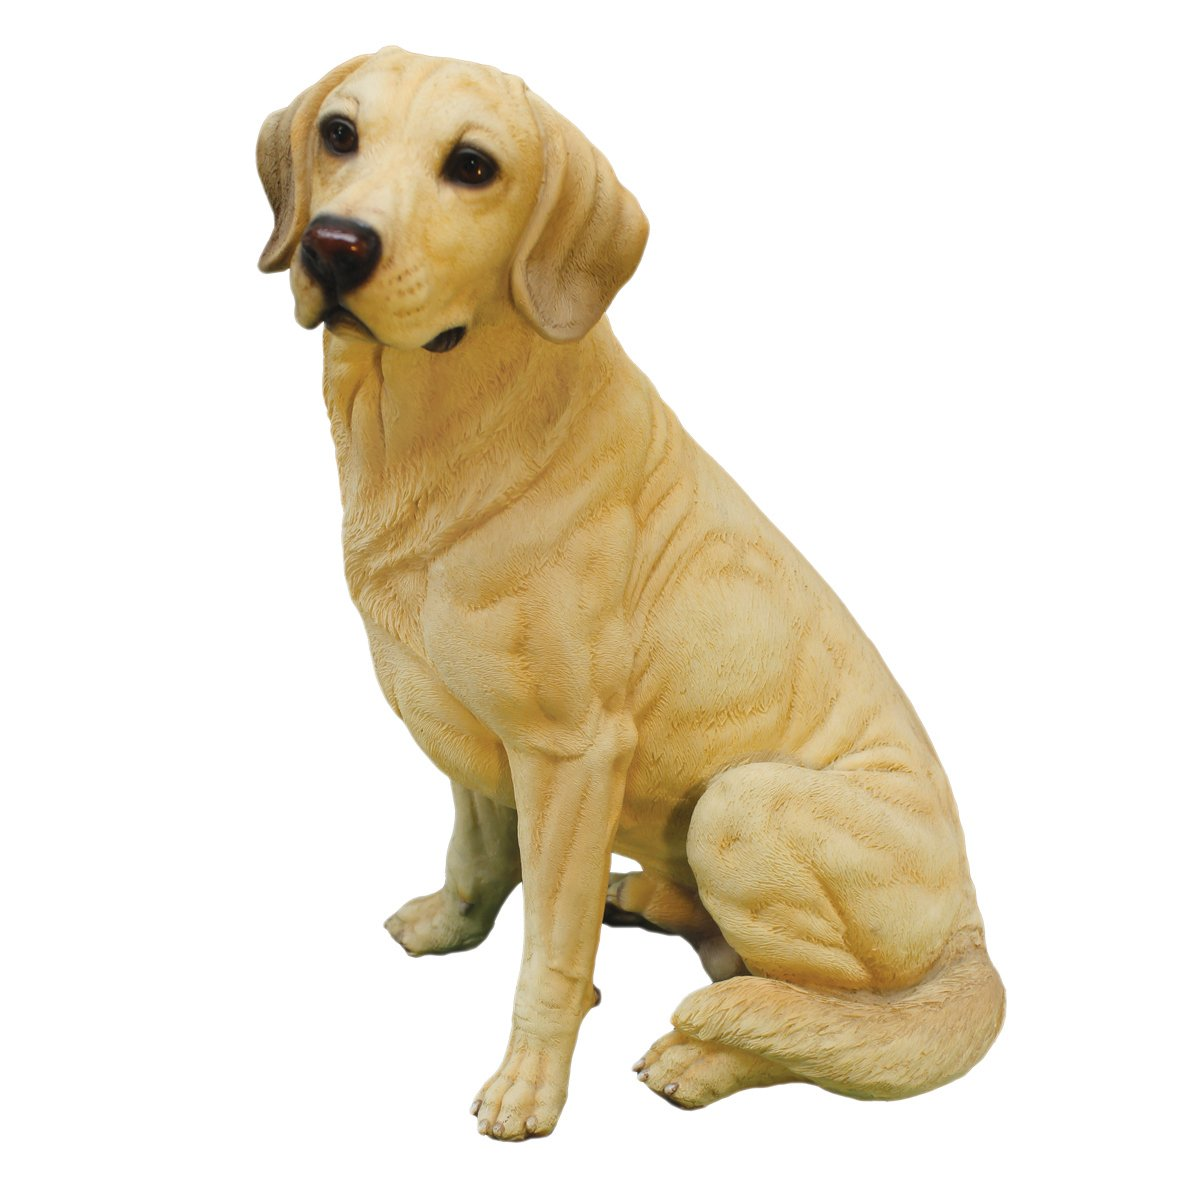 Delicieux Amazon.com: Design Toscano Golden Labrador Retriever Dog Garden Statue, 15  Inch, Yellow: Home U0026 Kitchen